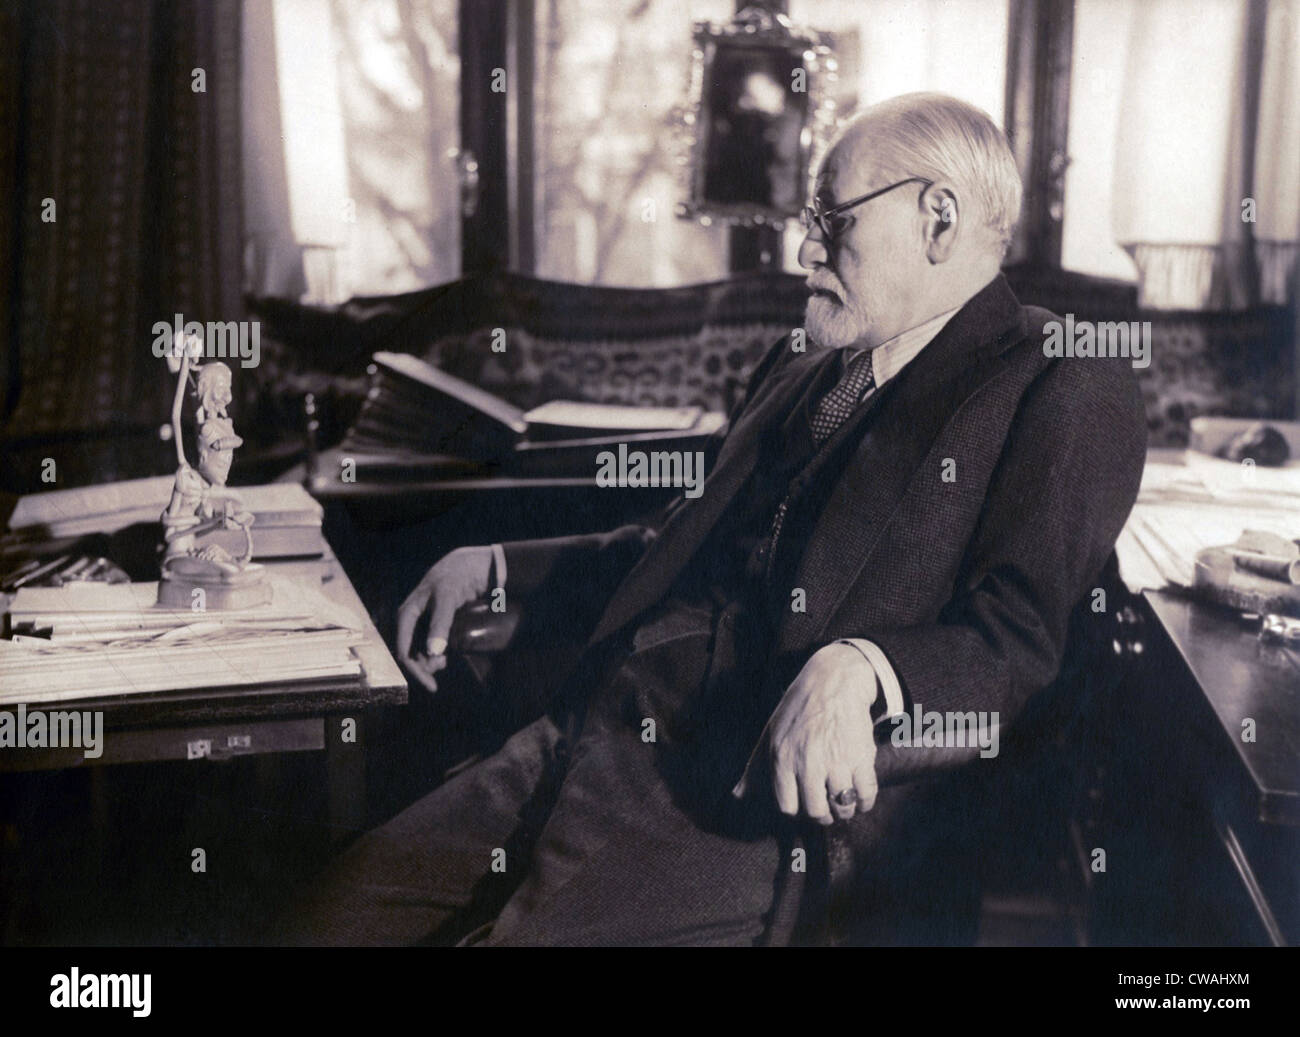 Sigmund Freud seated in his study contemplating a carved figurine (possibly Javanese) on his desk in 1937 photography - Stock Image